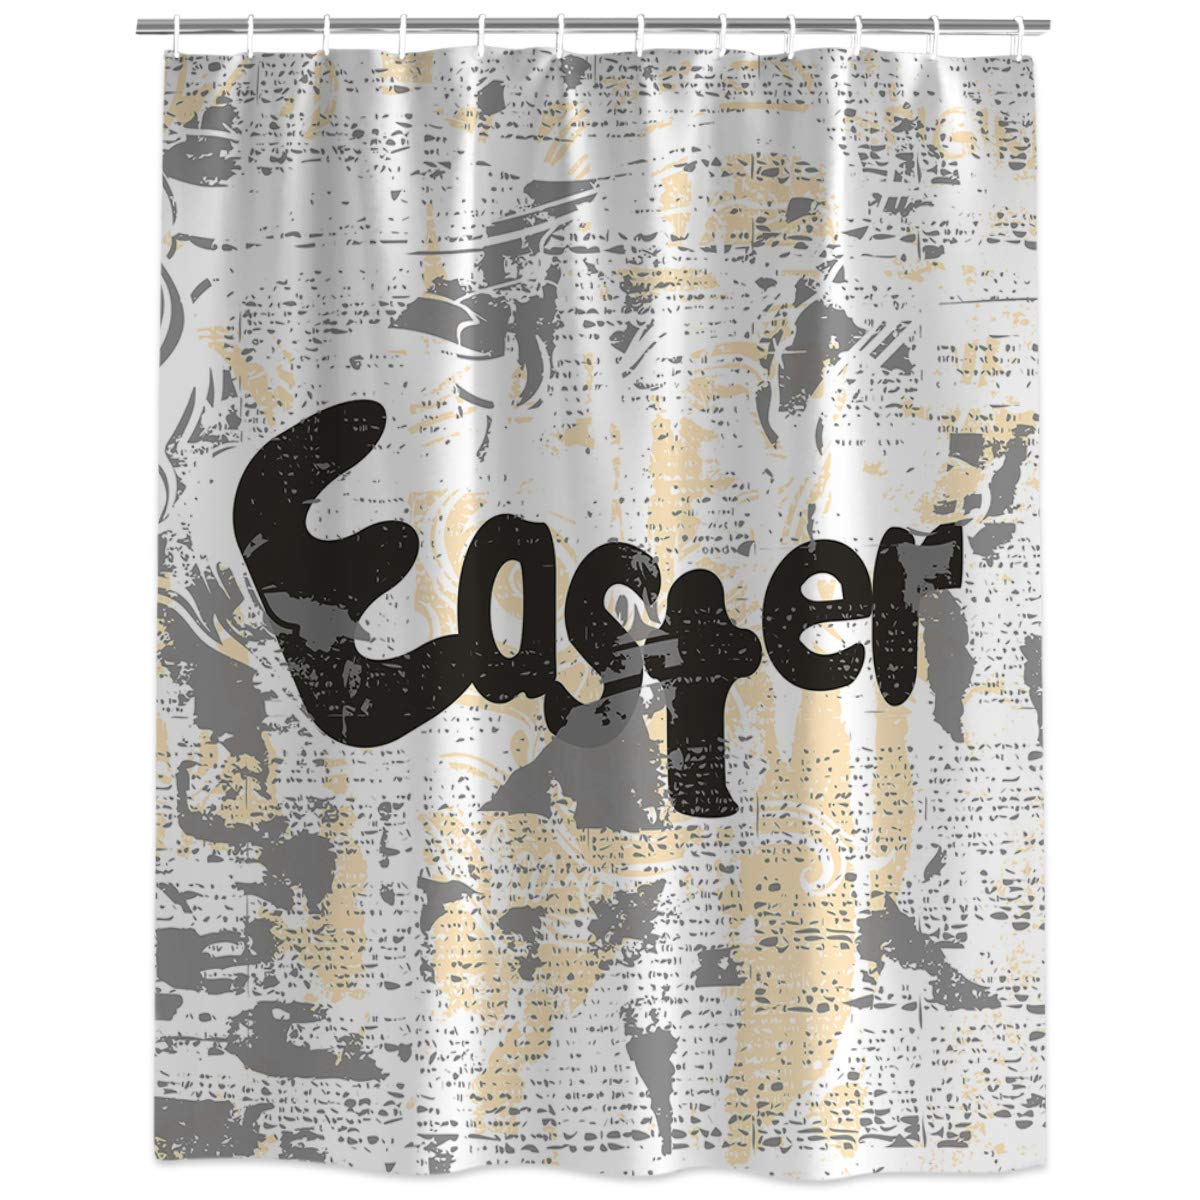 InvisibleWings Wordart Easter Blurry Poster Newspaper Shower Curtain Decoration Mildew Waterproof Polyester Fabric Machine Washable Bathroom Bath